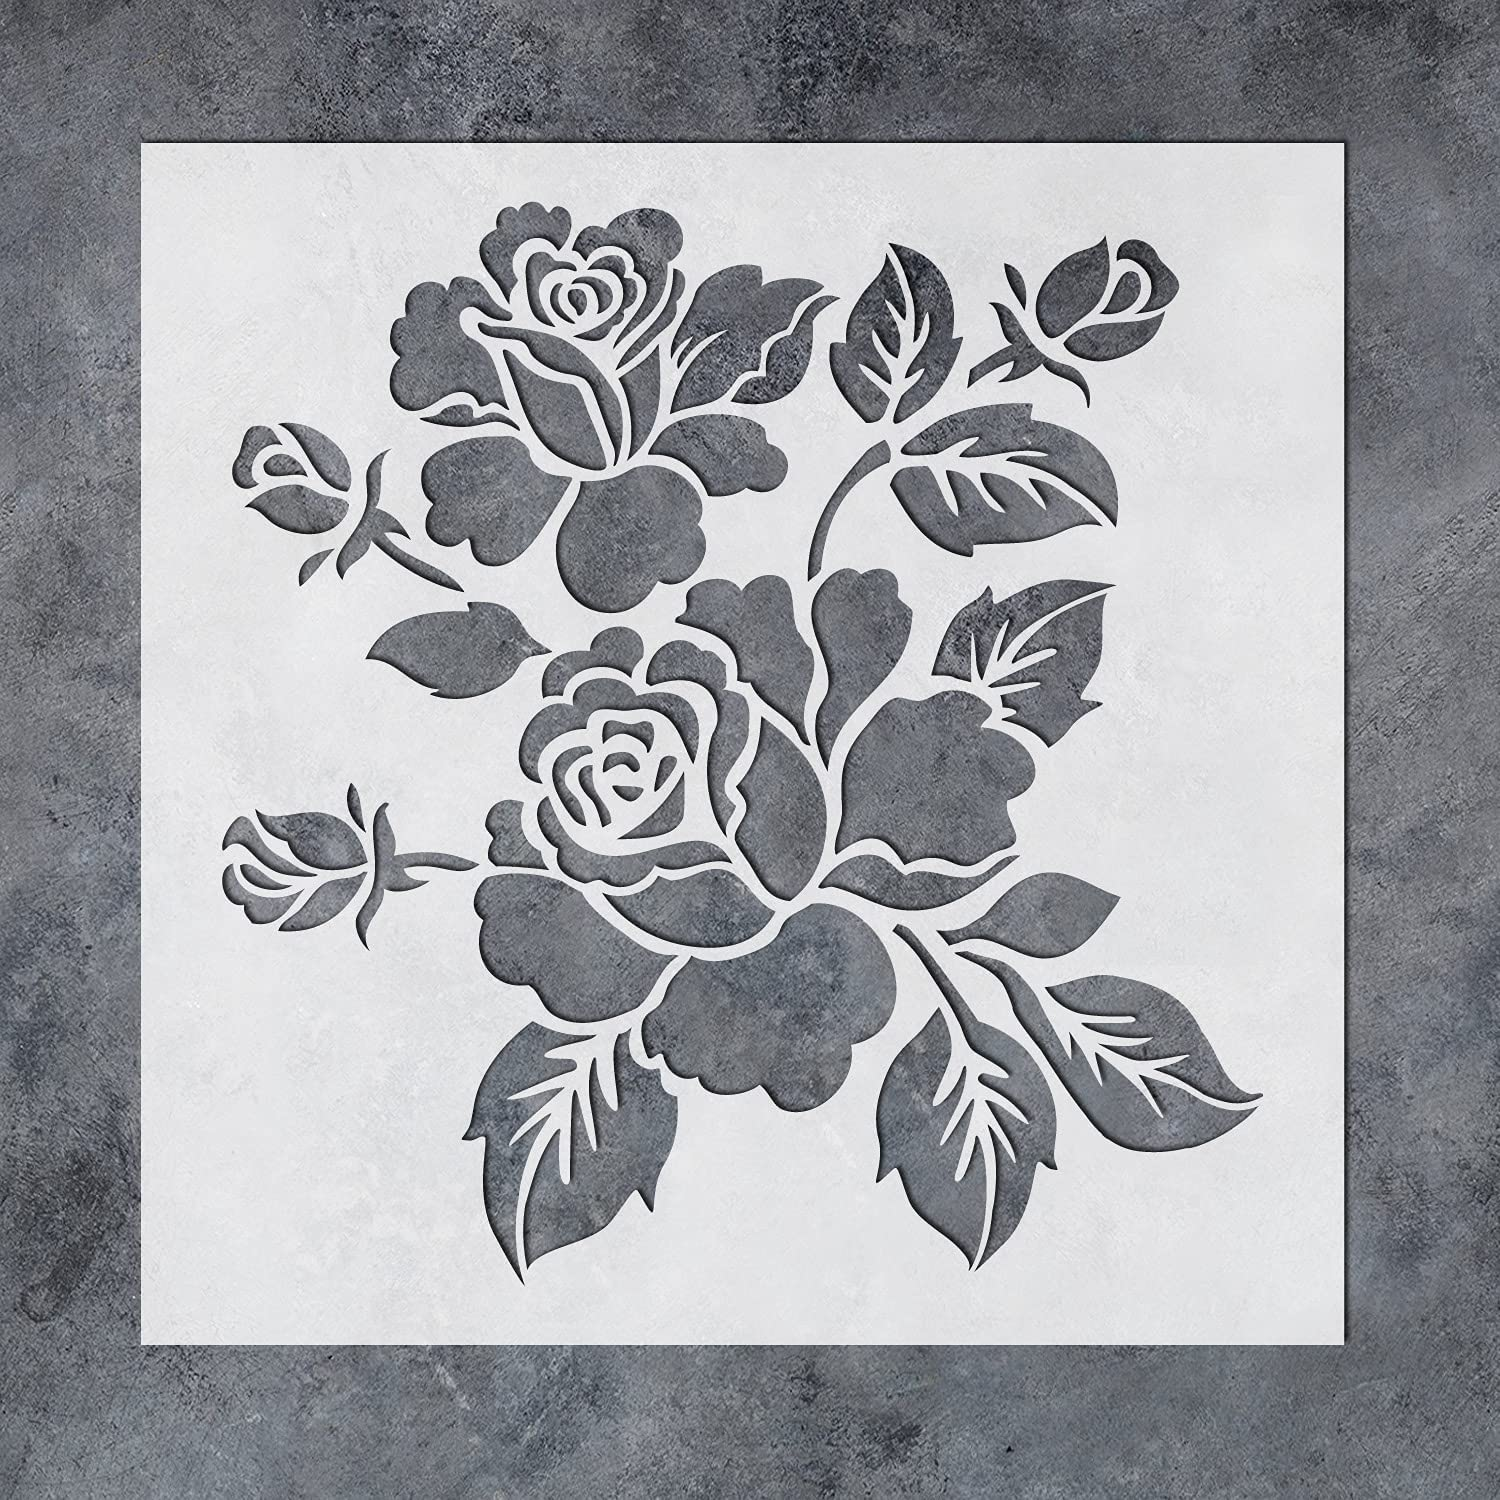 GSS Designs Bloom Rose Stencils for Painting Wood Canvas Paper Fabric Walls Furniture - Reusable Flower Stencils - Floral Paint Stencils Set for Home Decor 12x12 Inch